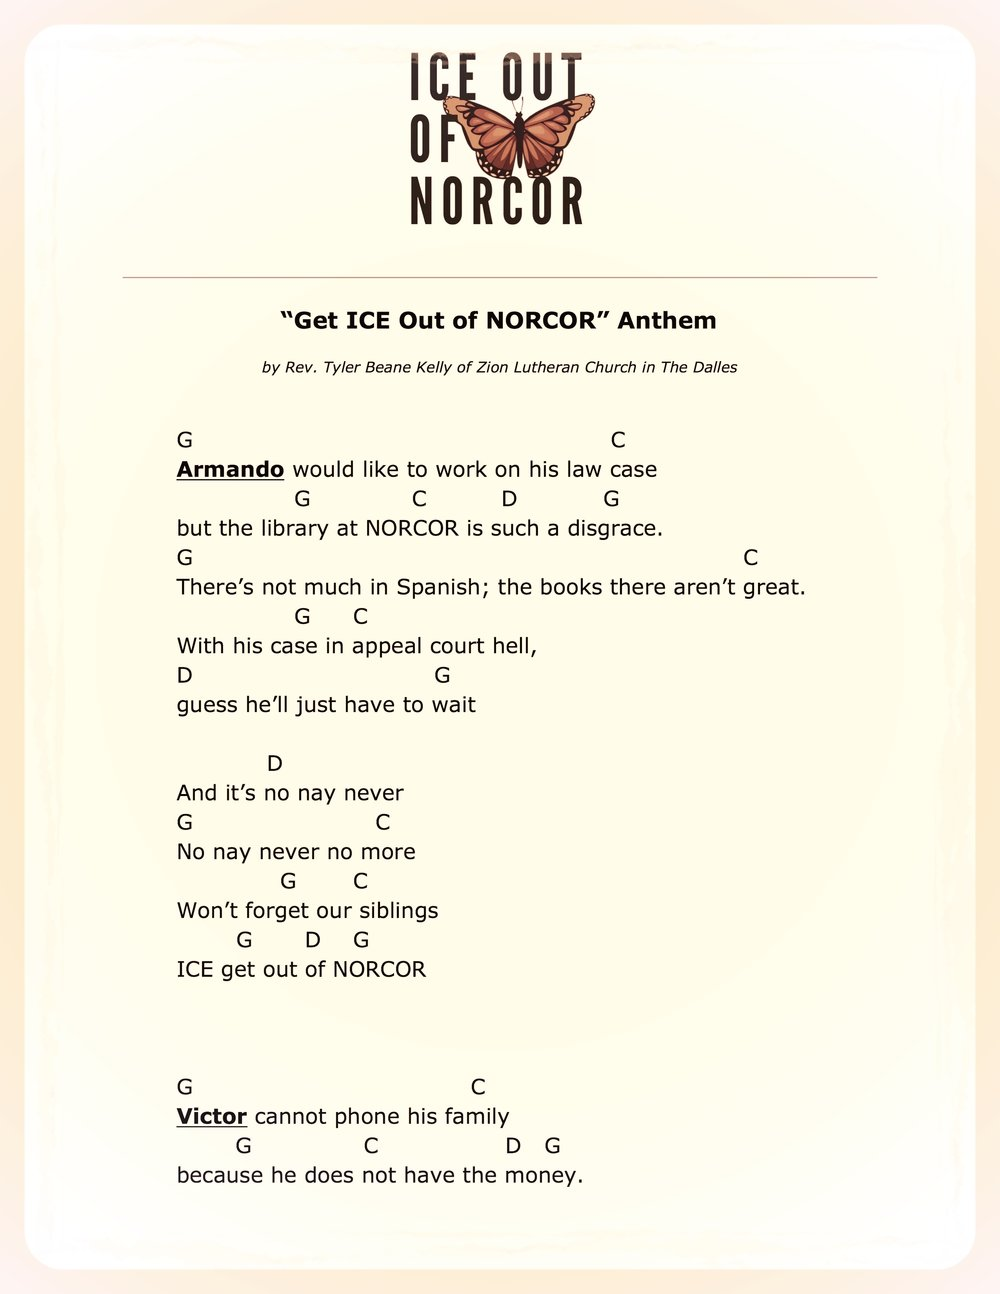 Get ICE Out of NORCOR Anthem (lyrics and chords)